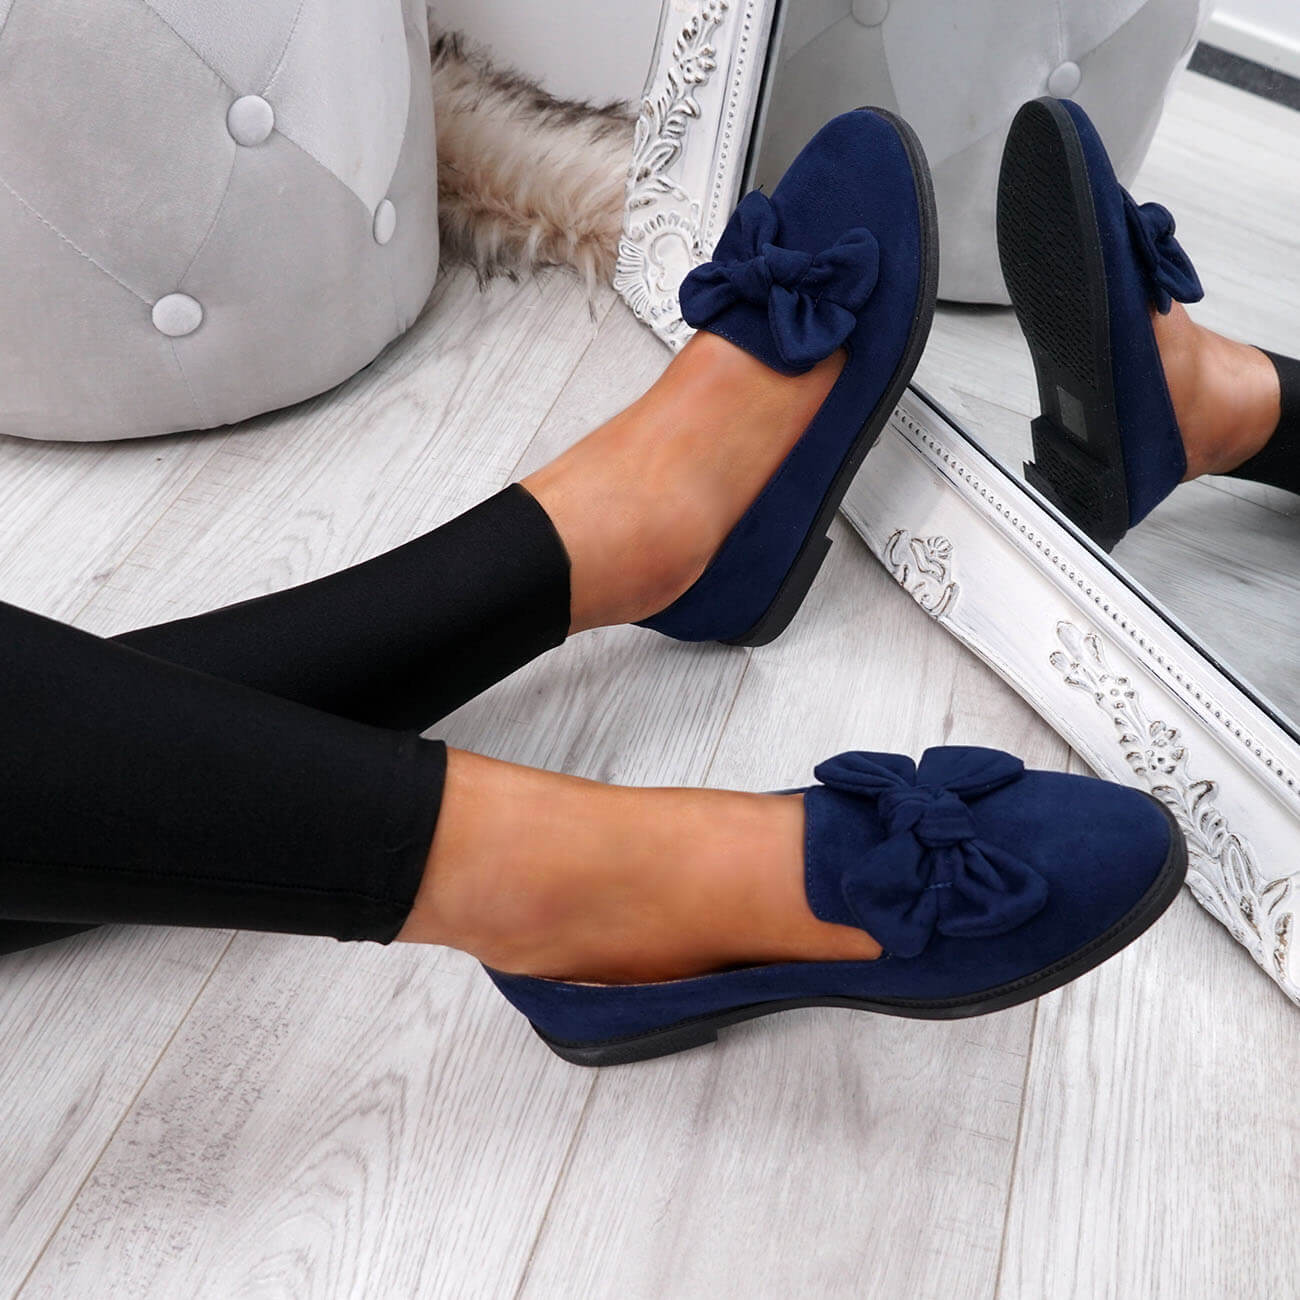 WOMENS-LADIES-BOW-BALLERINA-PUMPS-FLATS-SLIP-ON-BALLET-CASUAL-WORK-SHOES-SIZE thumbnail 23